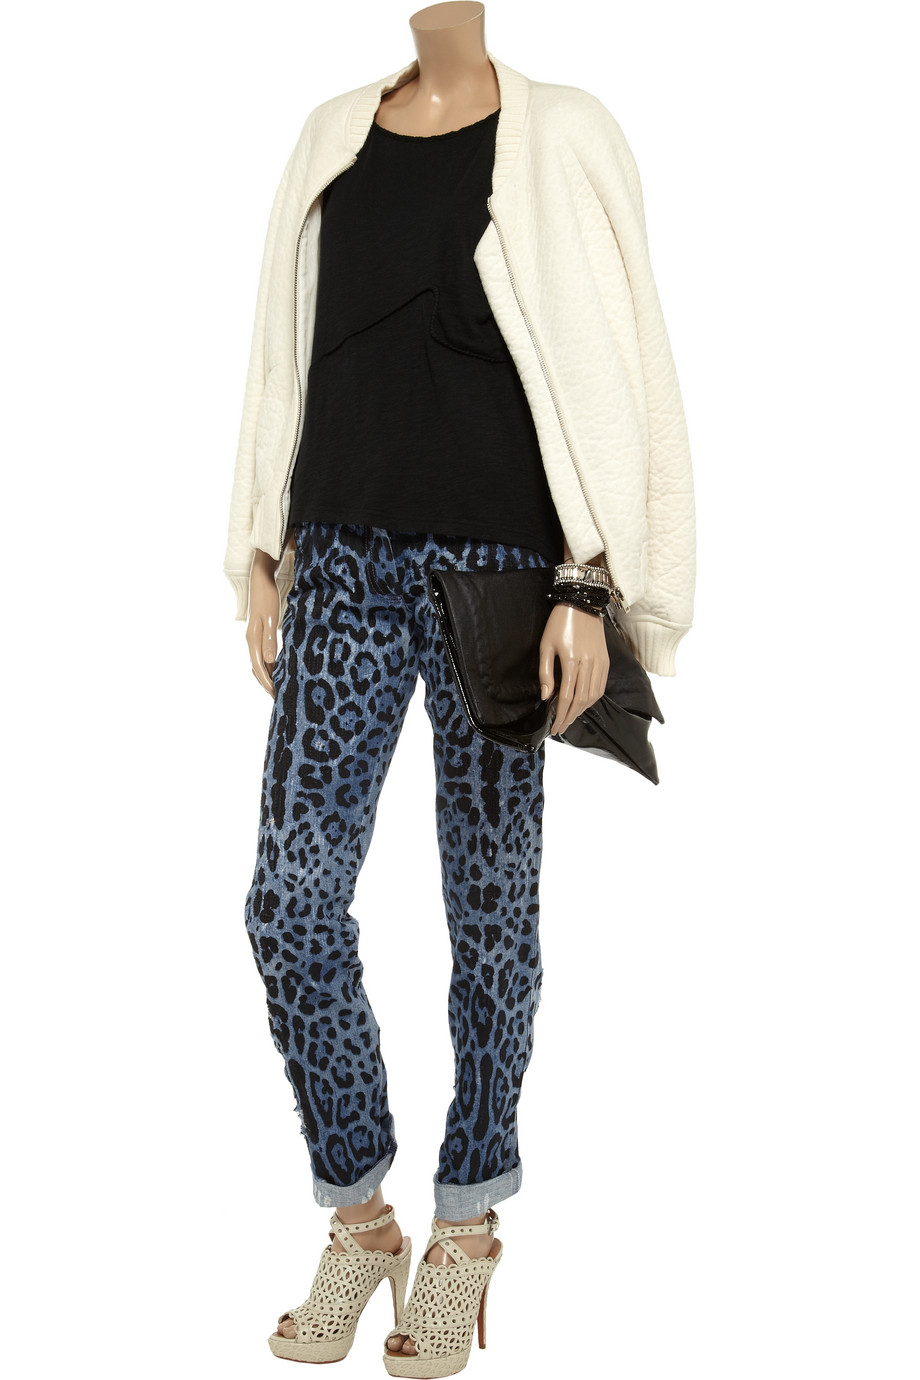 Dolce & Gabbana Printed Low Rise Straight Leg Jeans in Blue